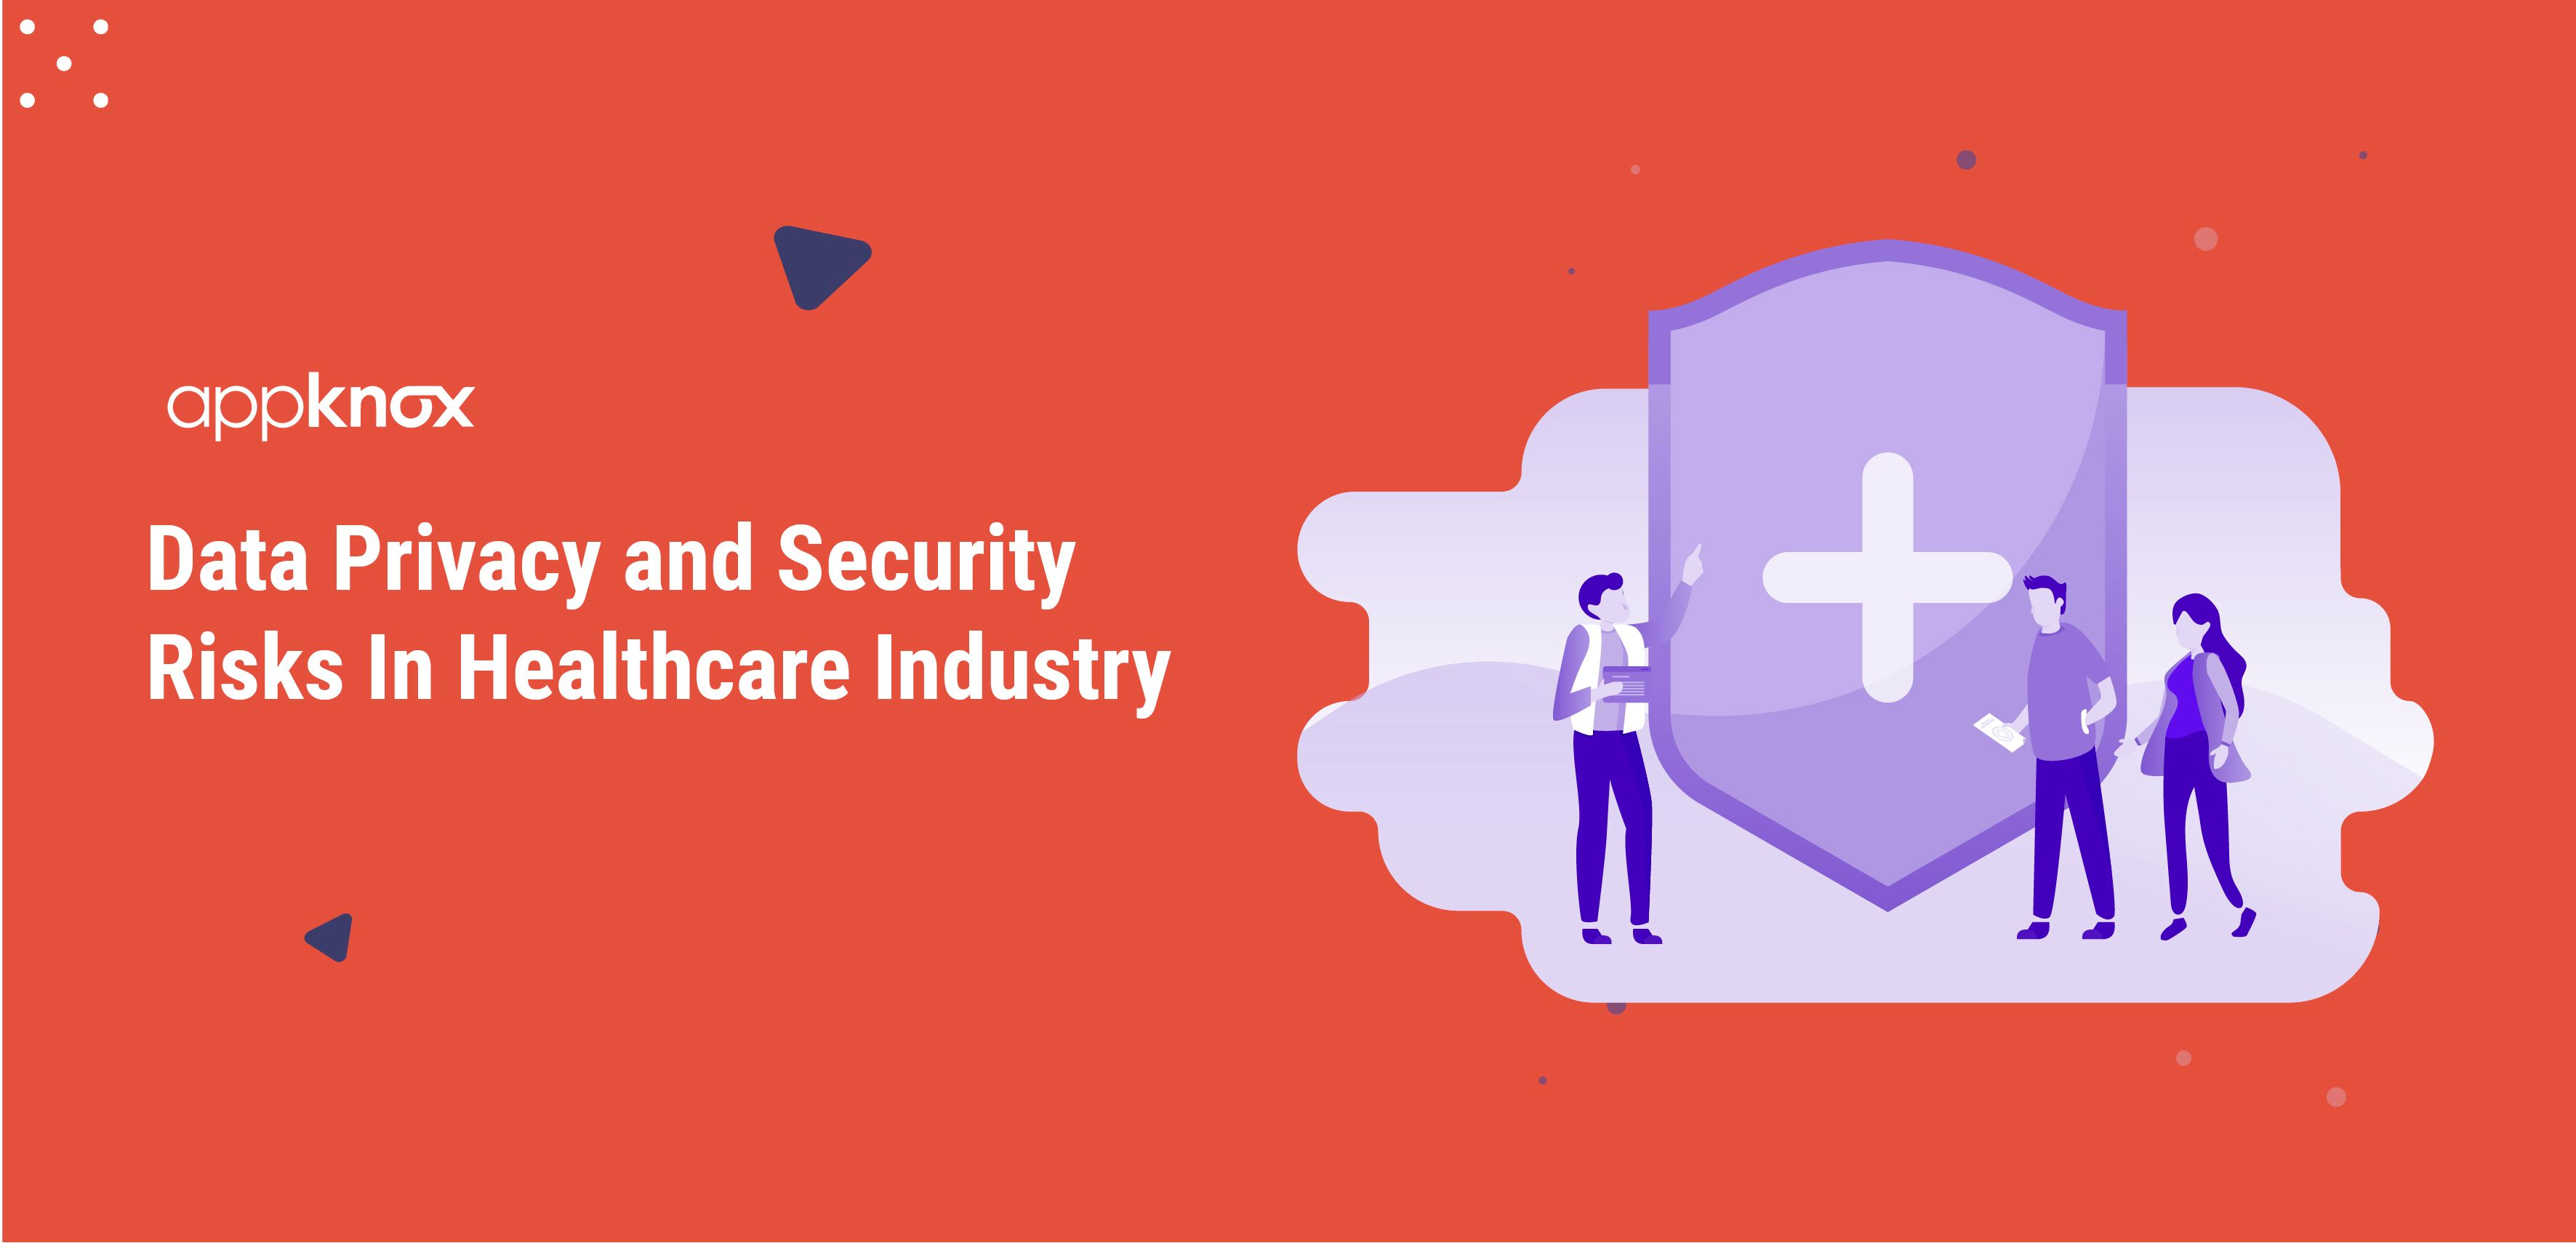 Data Privacy and Security Risks In Healthcare Industry